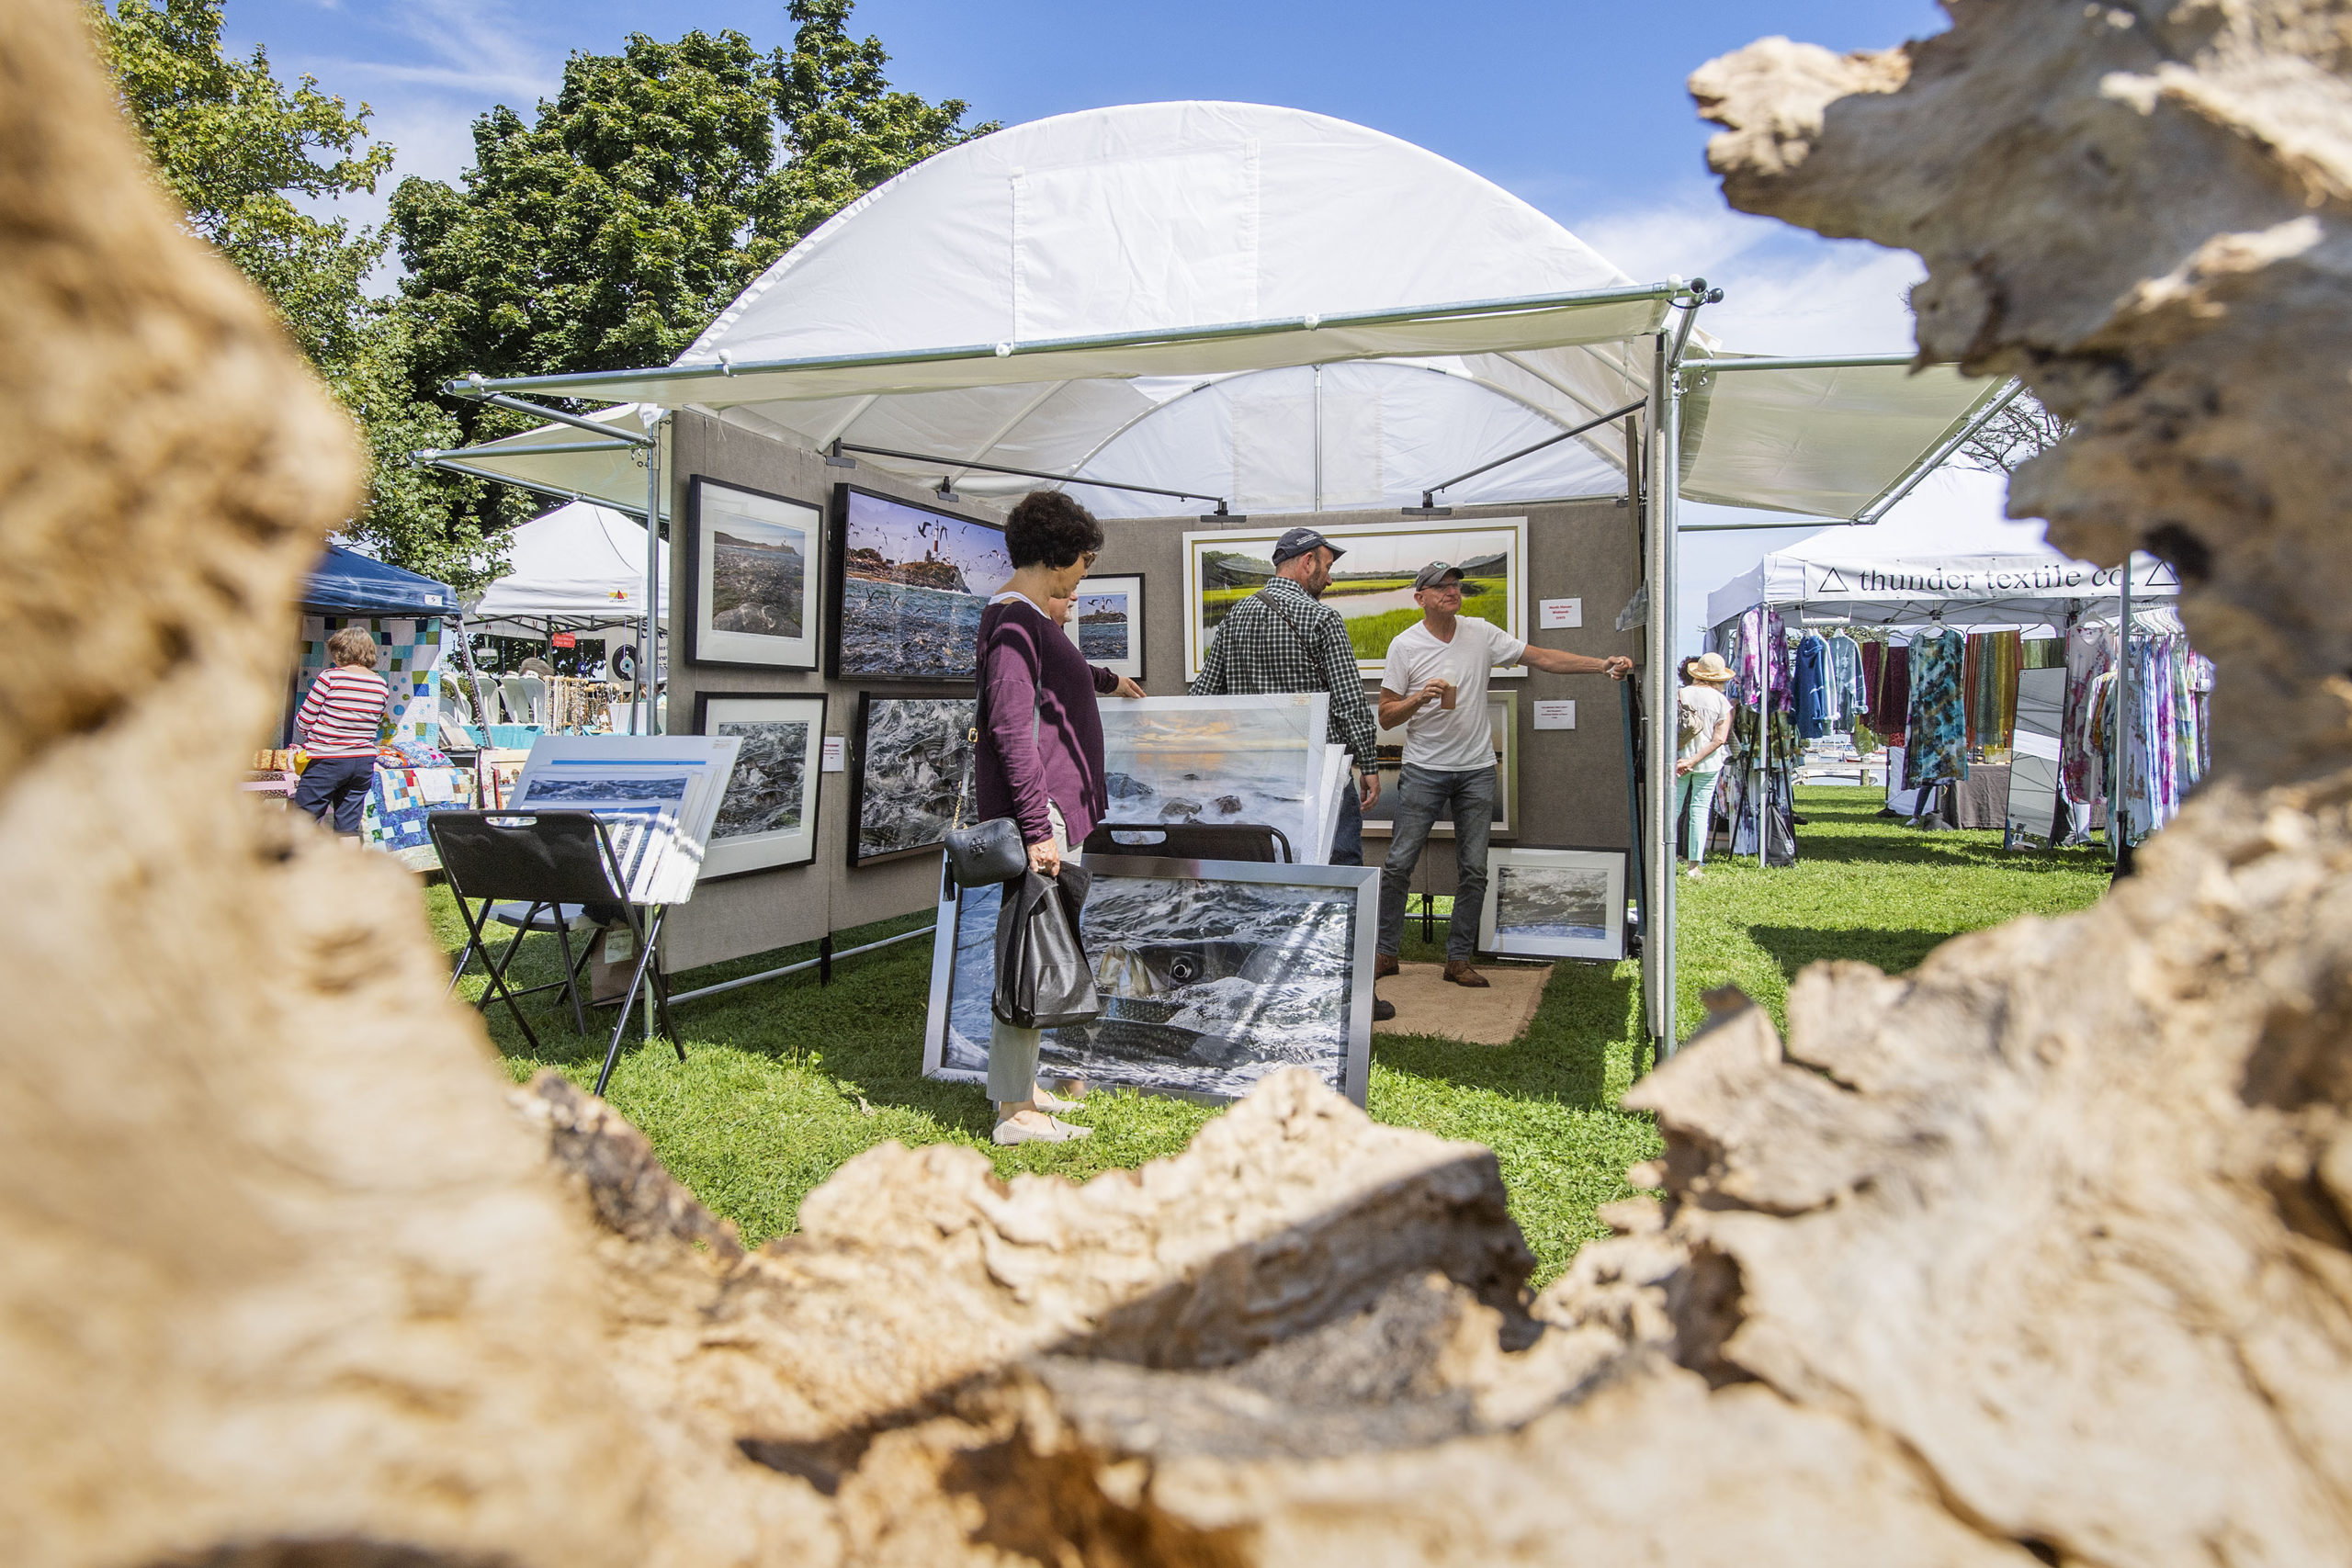 More than 50 vendors will return for the Sag Harbor Chamber of Commerce Father's Day Arts & Crafts Fair at Marine Park in Sag Harbor on June 19 and 20.